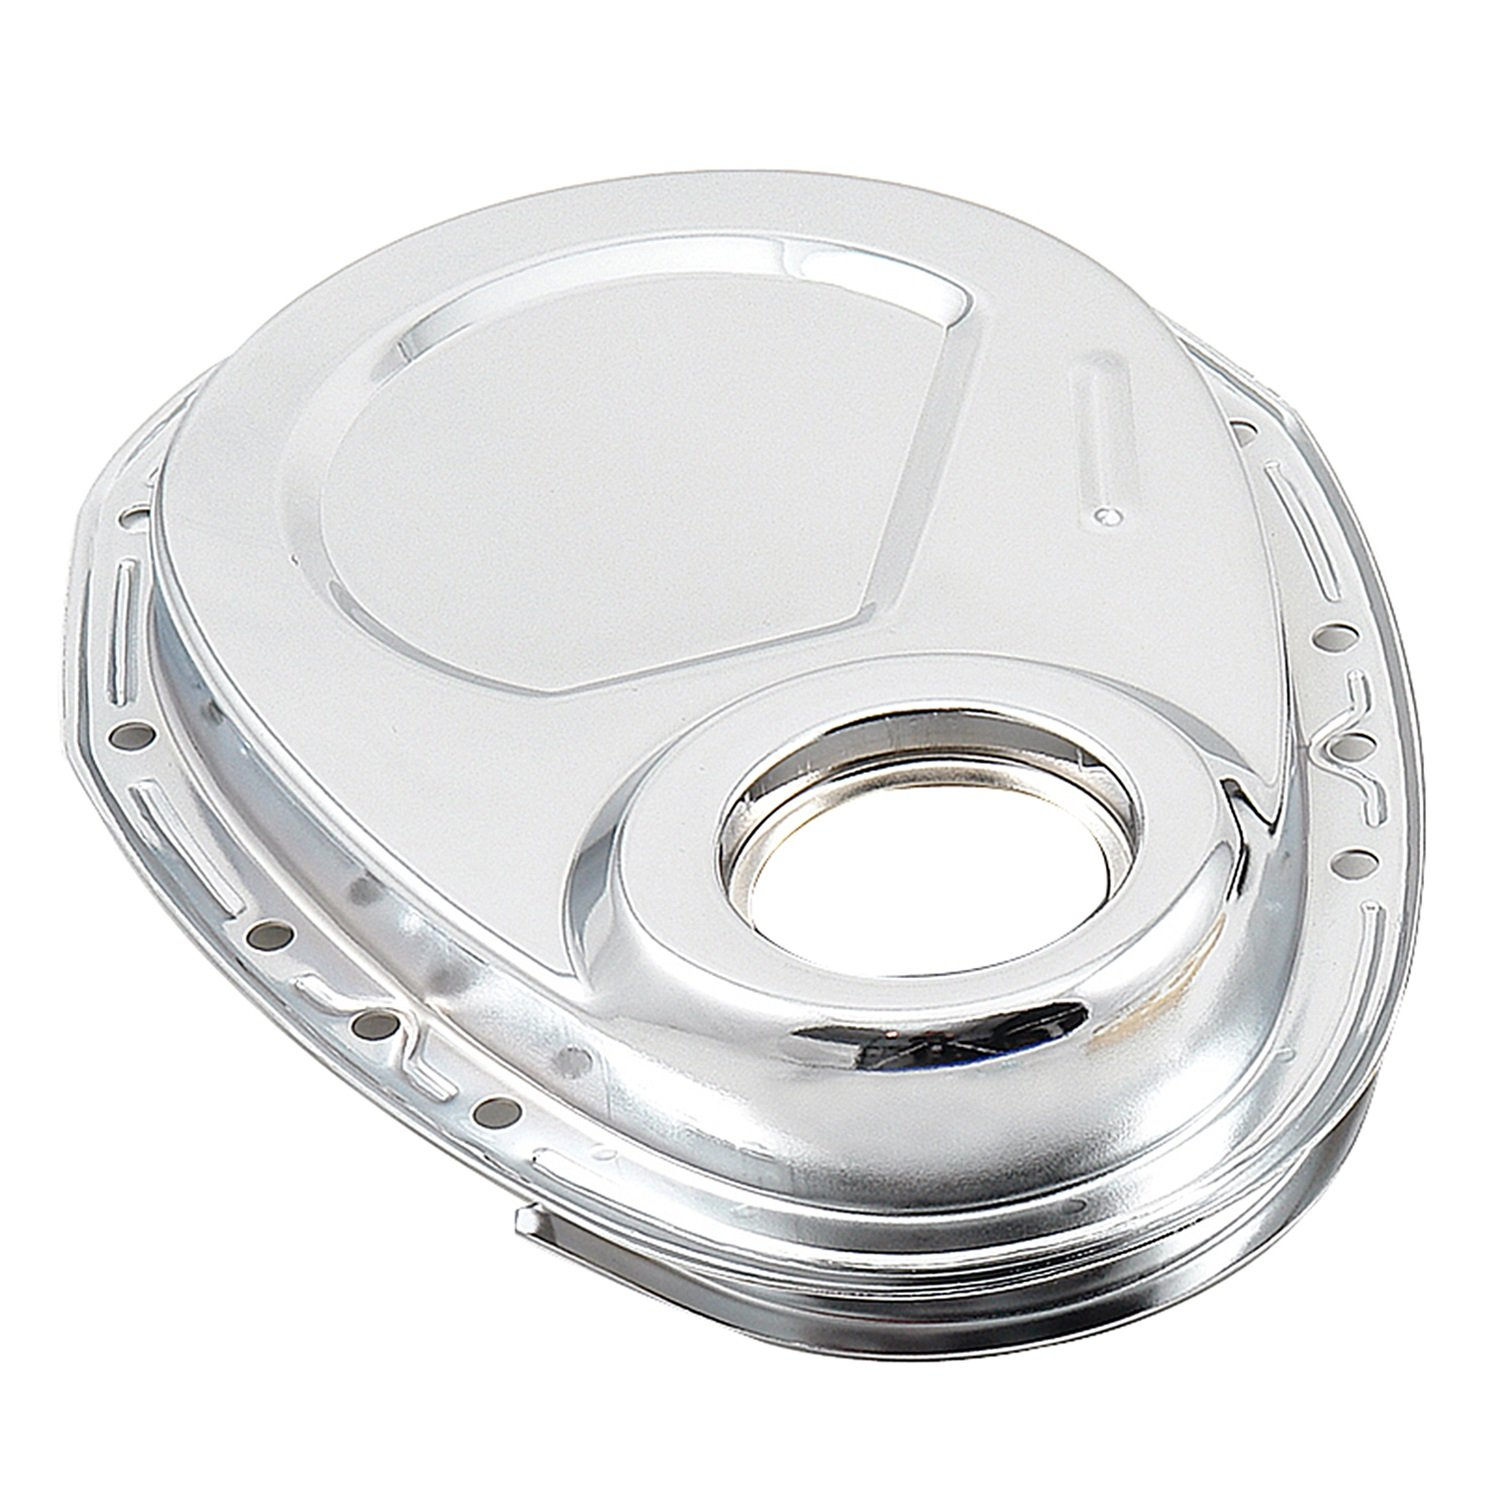 Mr Gasket 4595 Chrome Plated Timing Cover Only